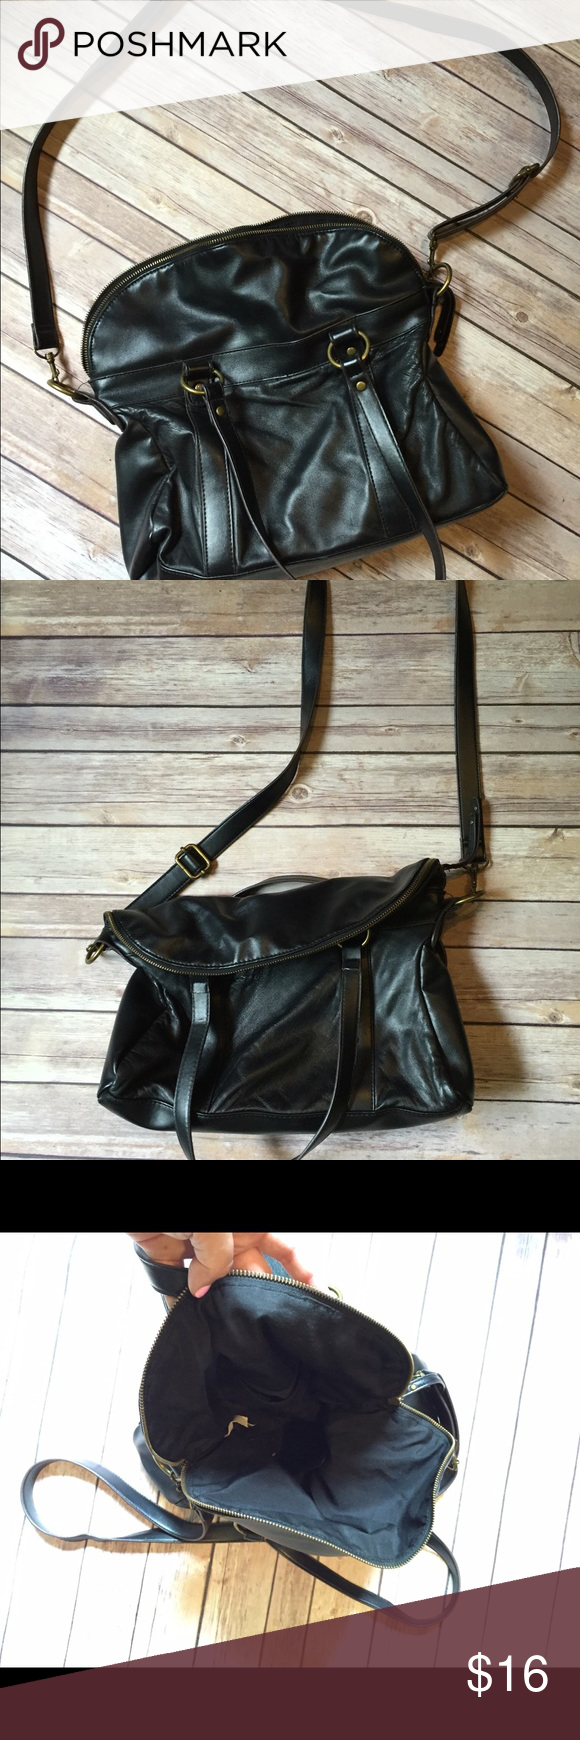 Uncategorized Leather Like Material black cross body slouchy bagpurse leather like material bag